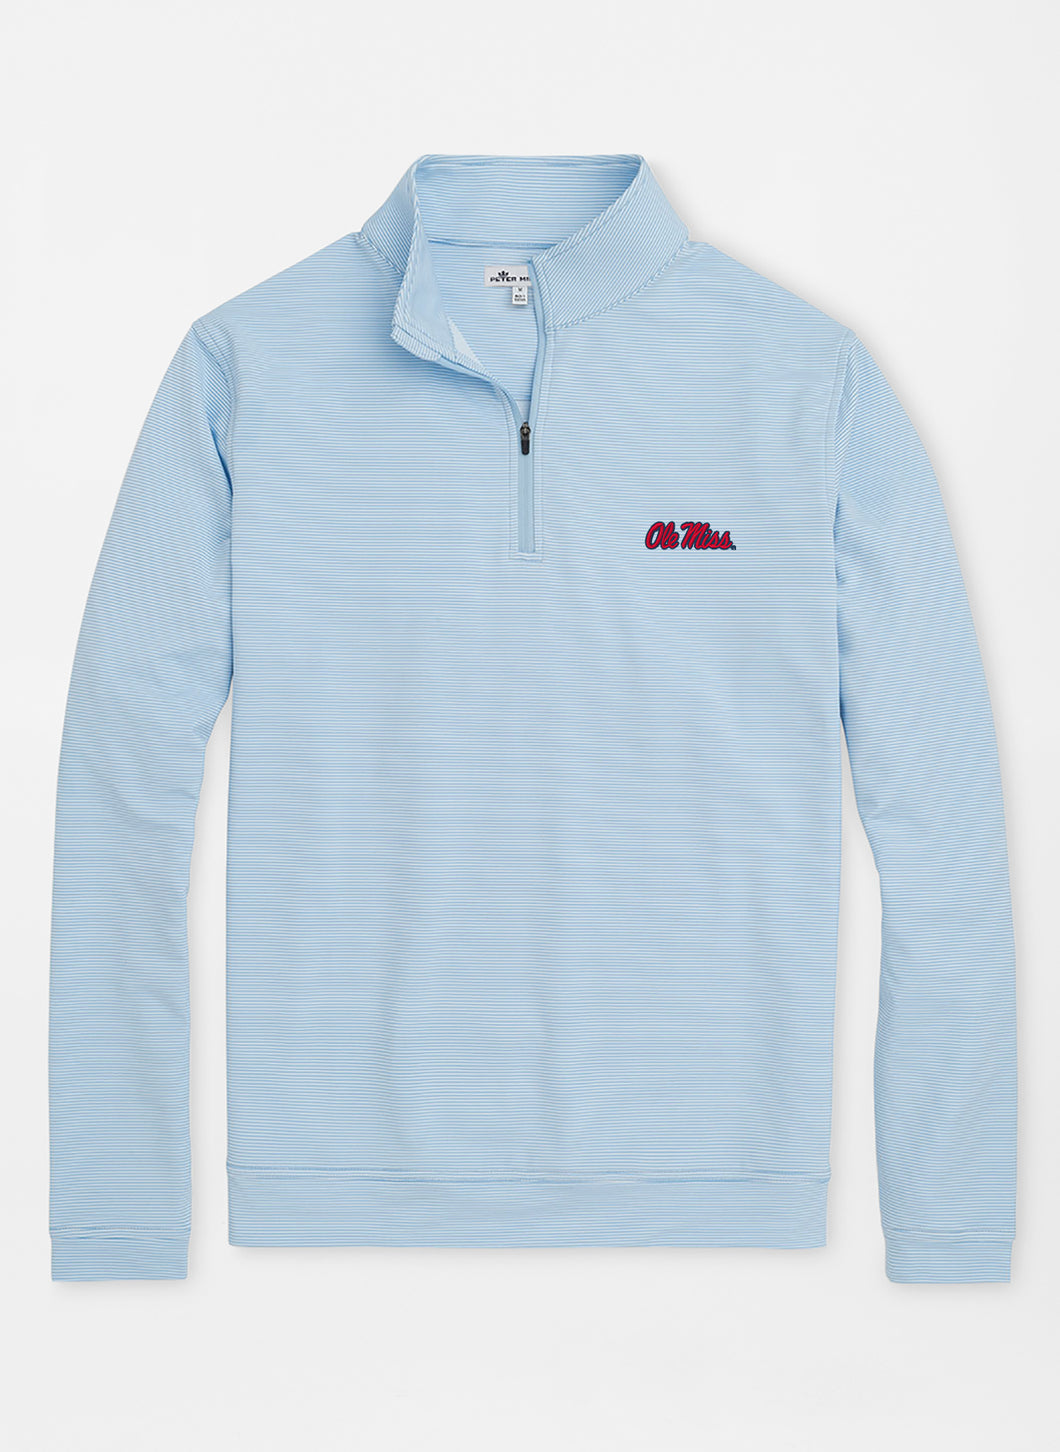 Peter Millar Ole Miss Perth Mini-Stripe Stretch Loop Terry Quarter-Zip: Cottage Blue & White